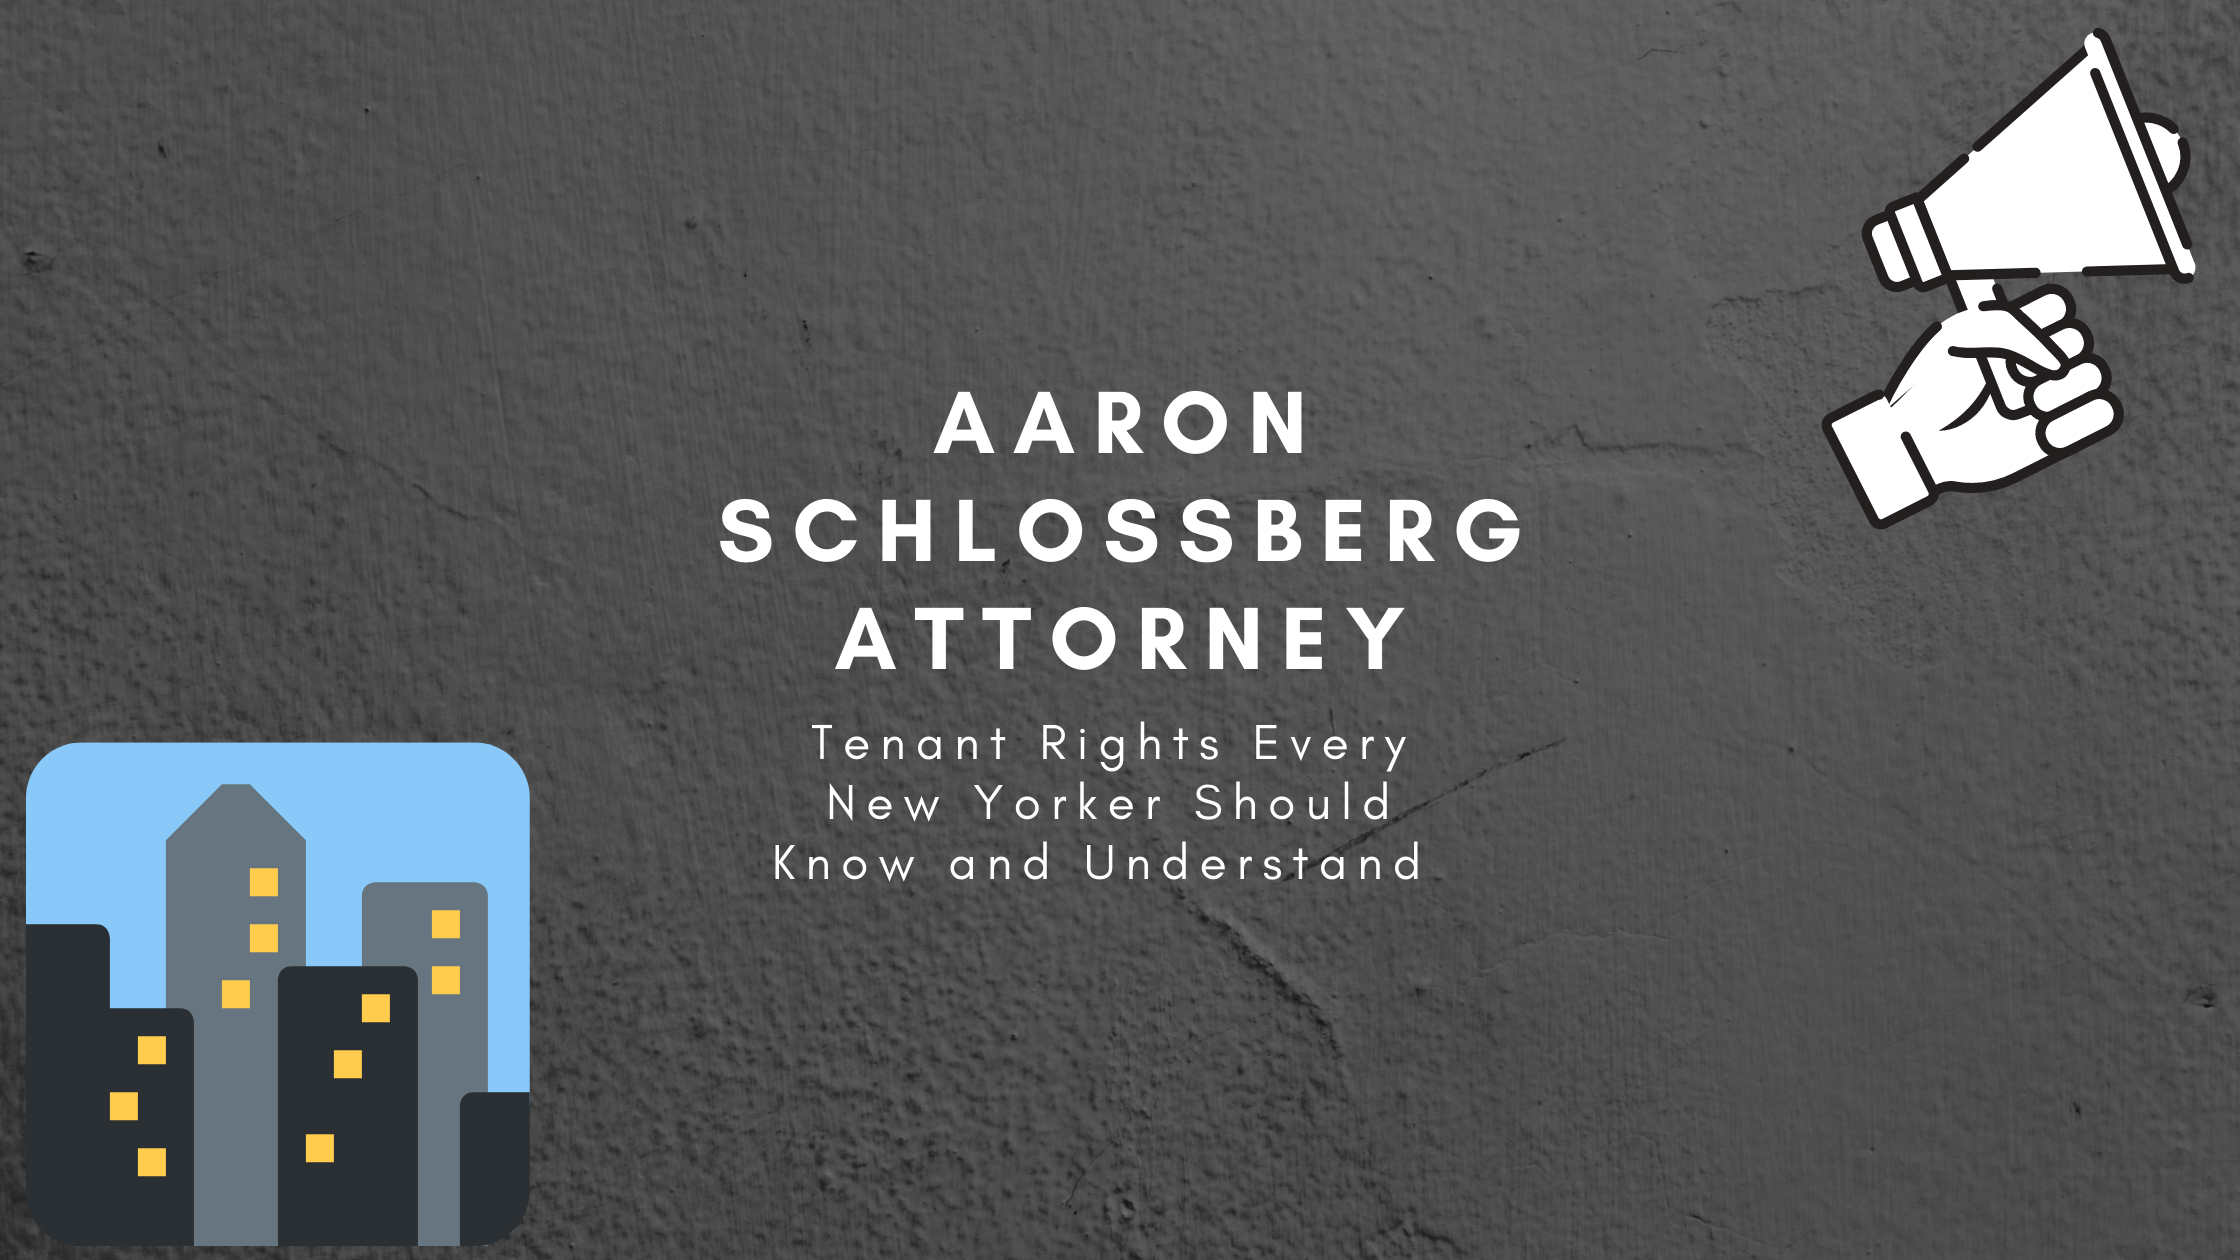 Aaron Schlossberg Attorney Discusses Tenant Rights Every New Yorker Should Know and Understand